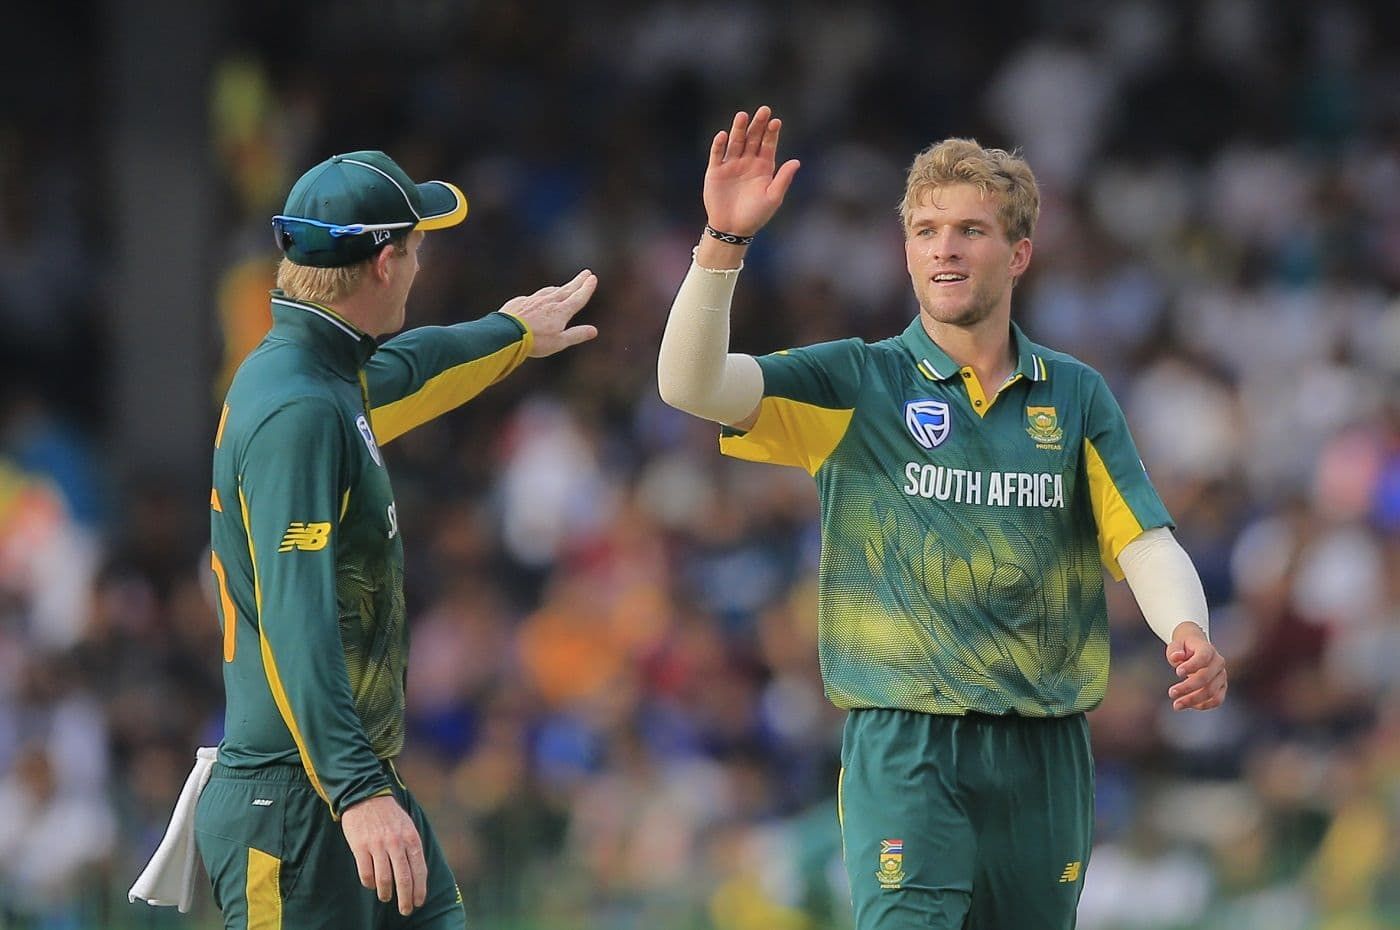 Wiaan Mulder added to South Africa's squad for fifth ODI